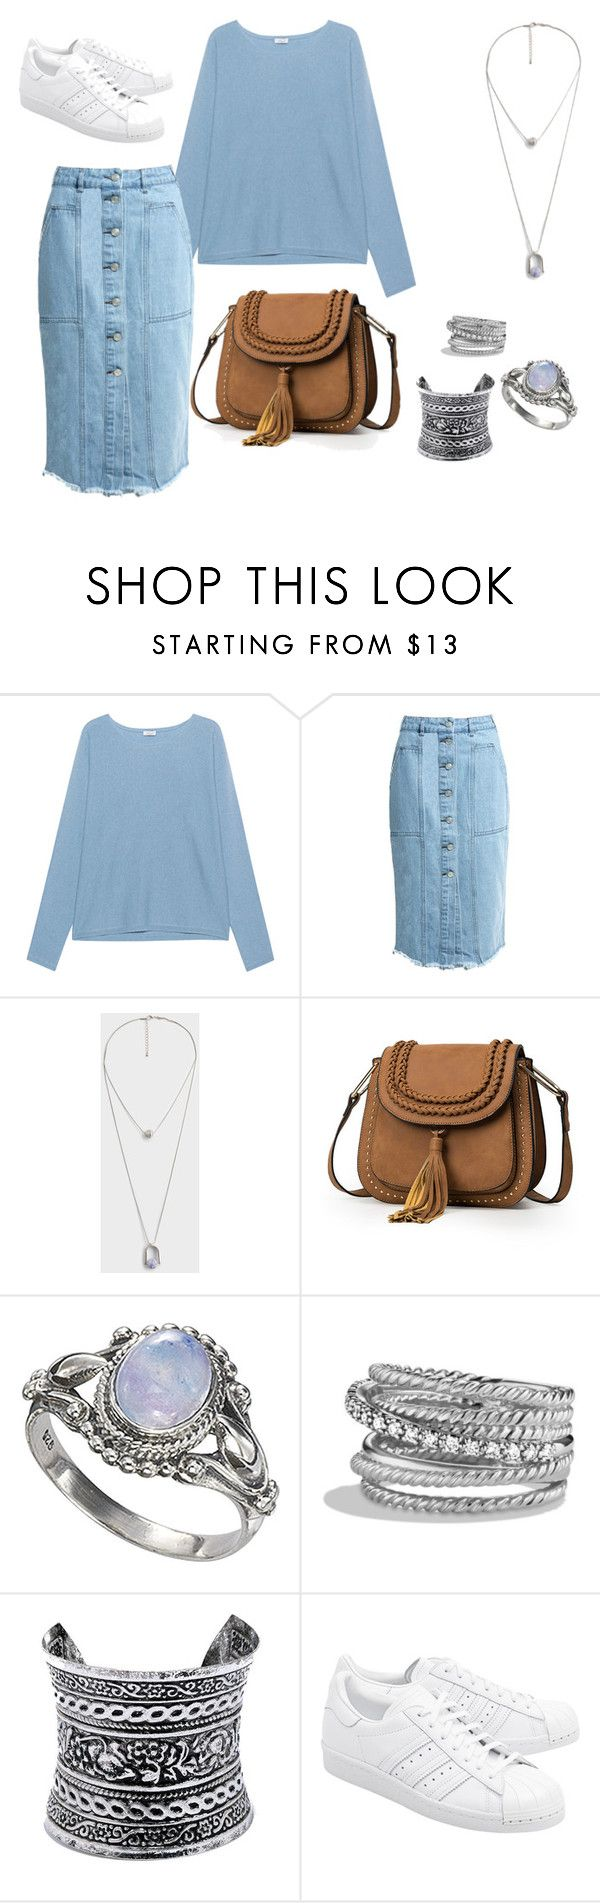 fashion fall by missmikey on Polyvore featuring iHeart, Sans Souci, adidas Originals, David Yurman, MANGO and LULUS